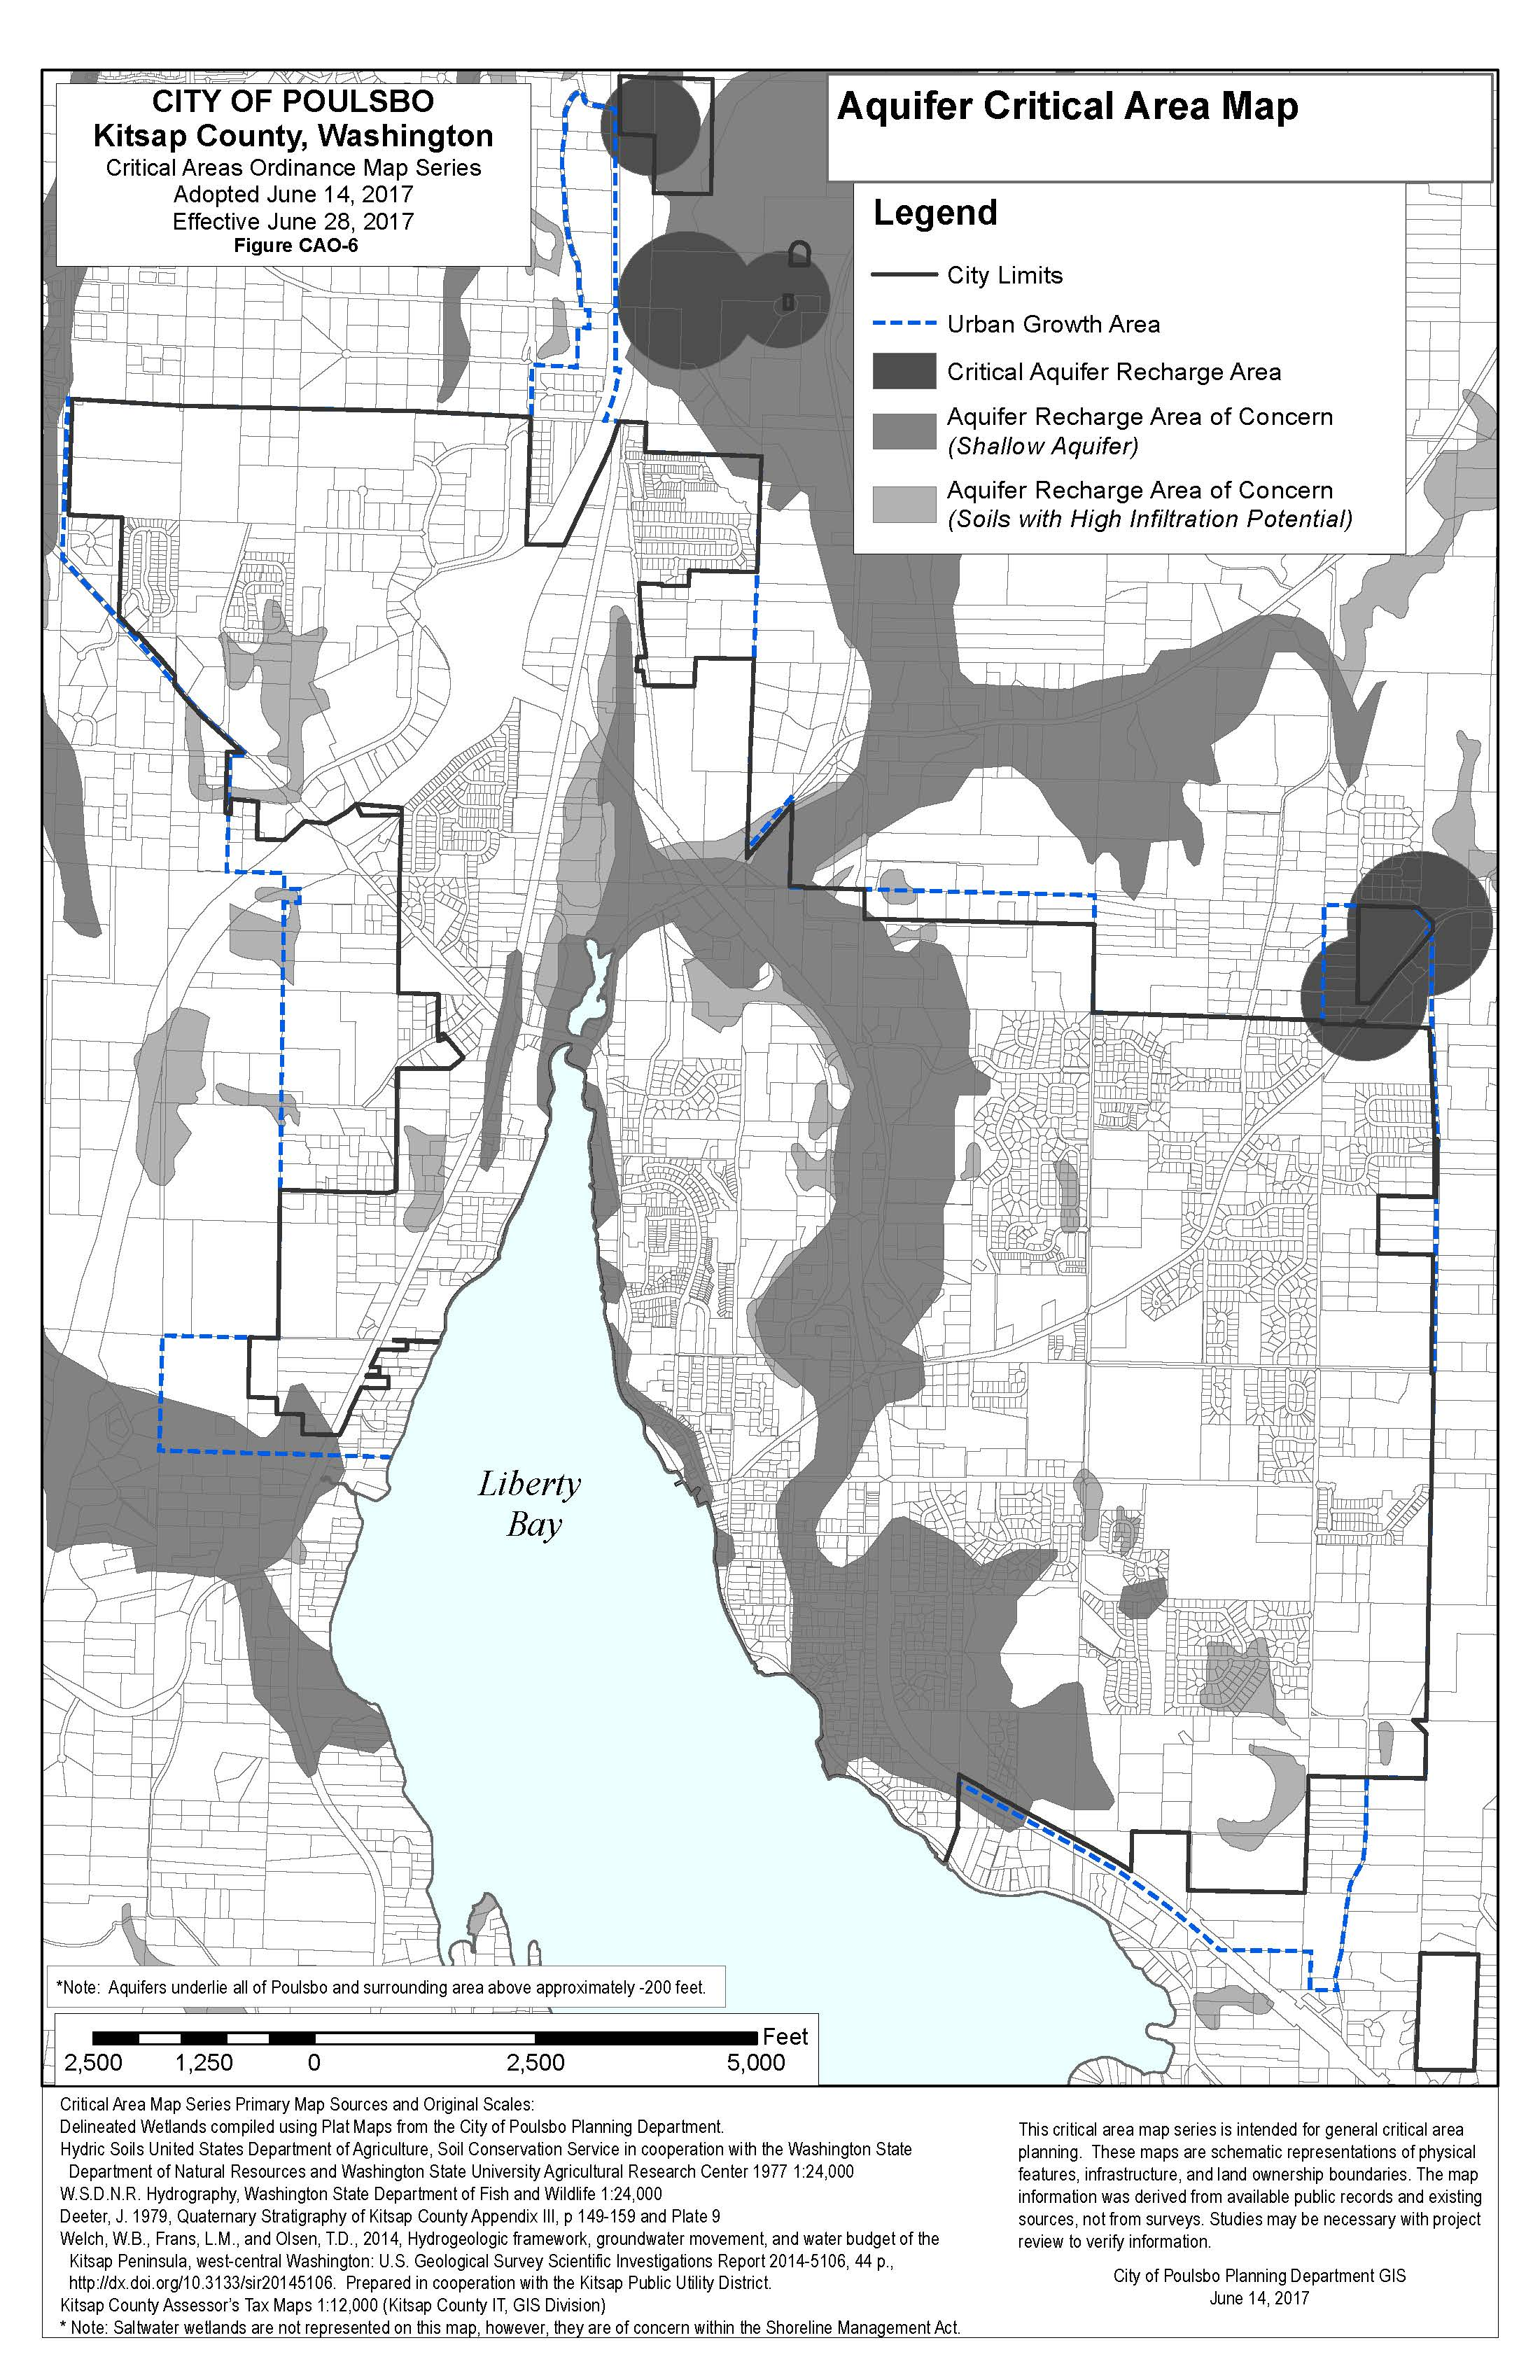 Codes Amendments Maps City Of Poulsbo 2nd Judicial Circuit Historical Society Aquifer Critical Area Map Cao Fig 6